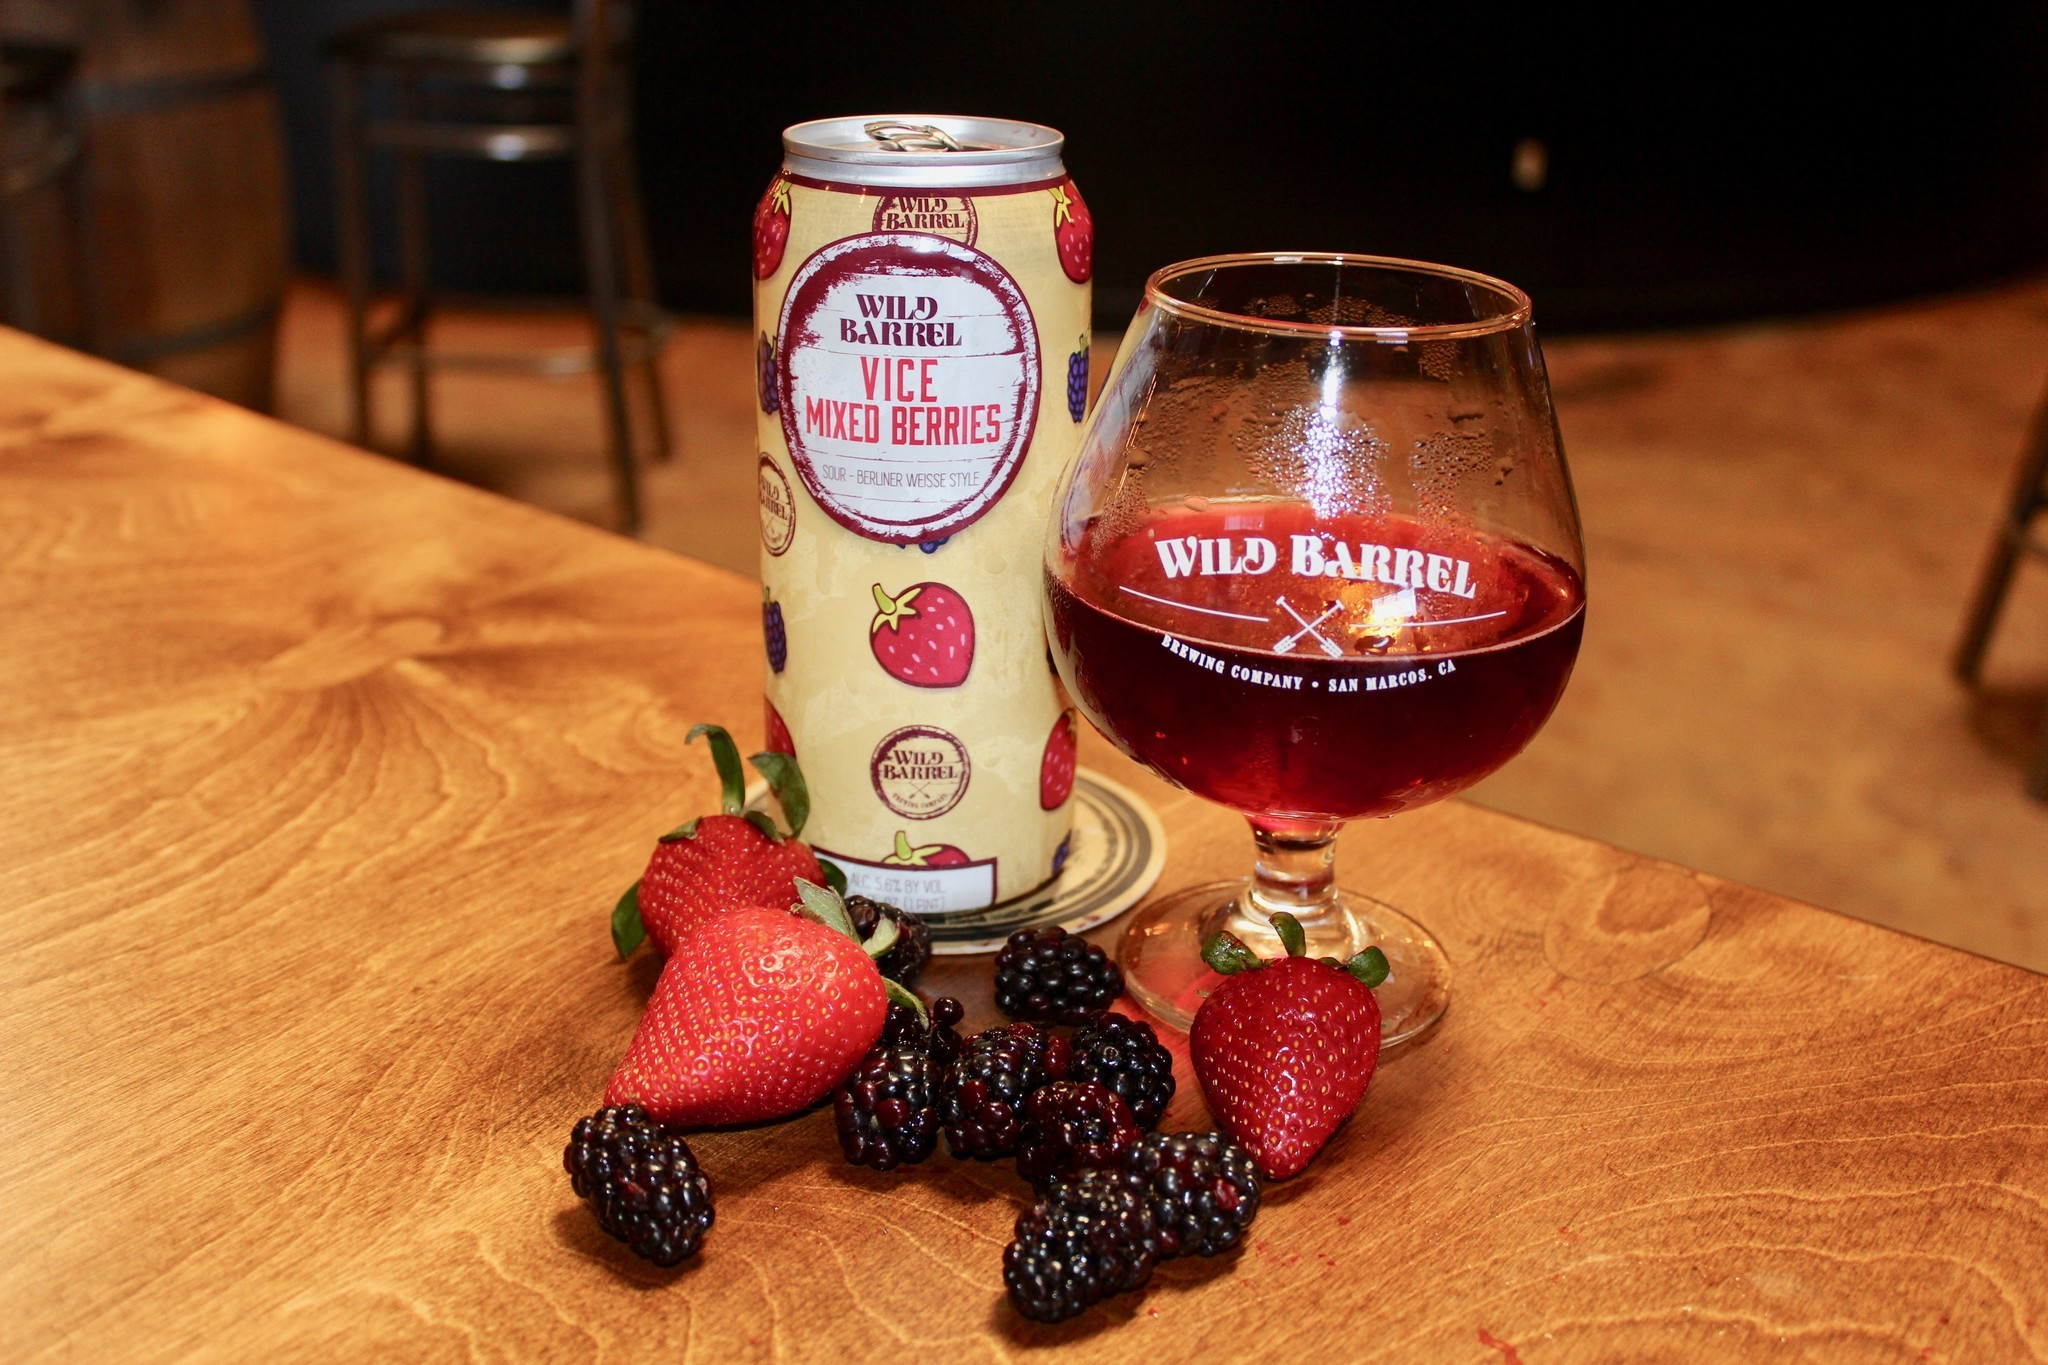 Beer of the week: Vice Mixed Berries from Wild Barrel Brewing Company